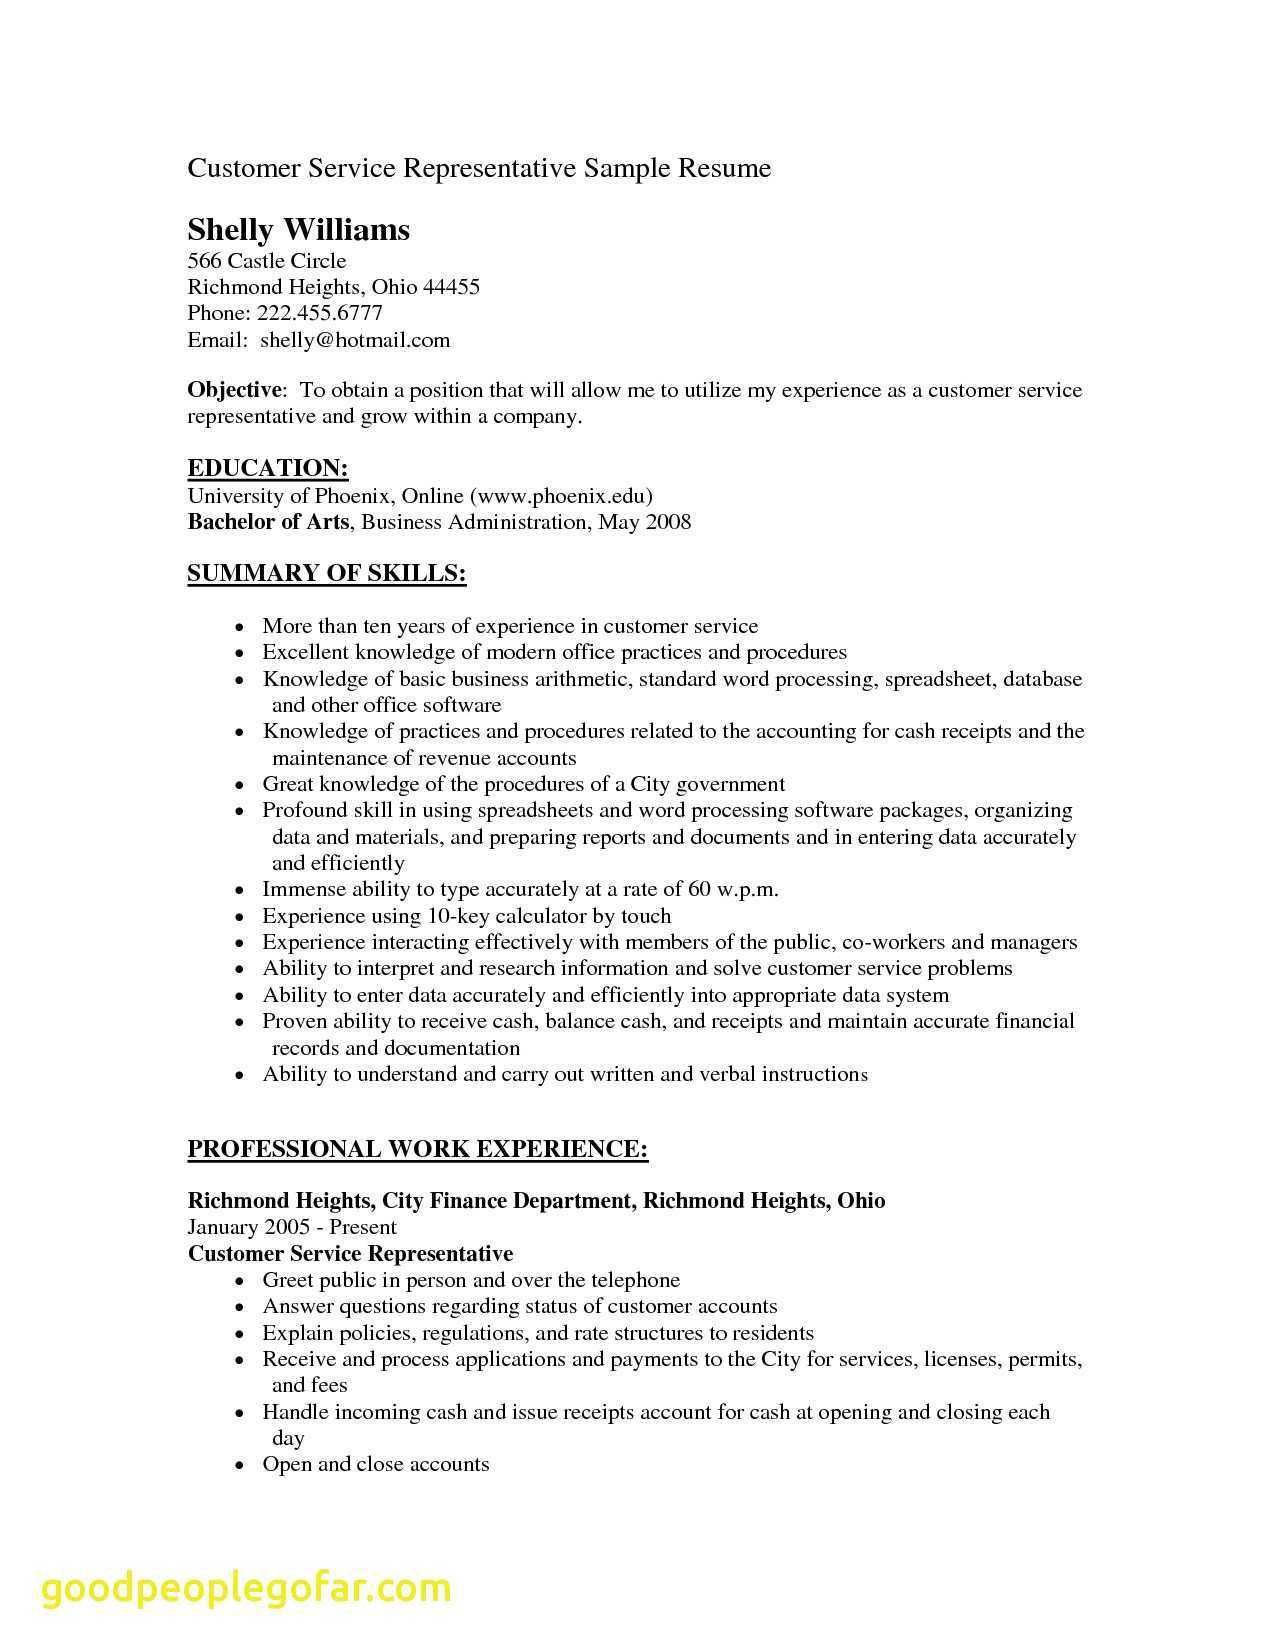 51 Awesome Customer Service Resume Objective Or Summary Examples by Gallery